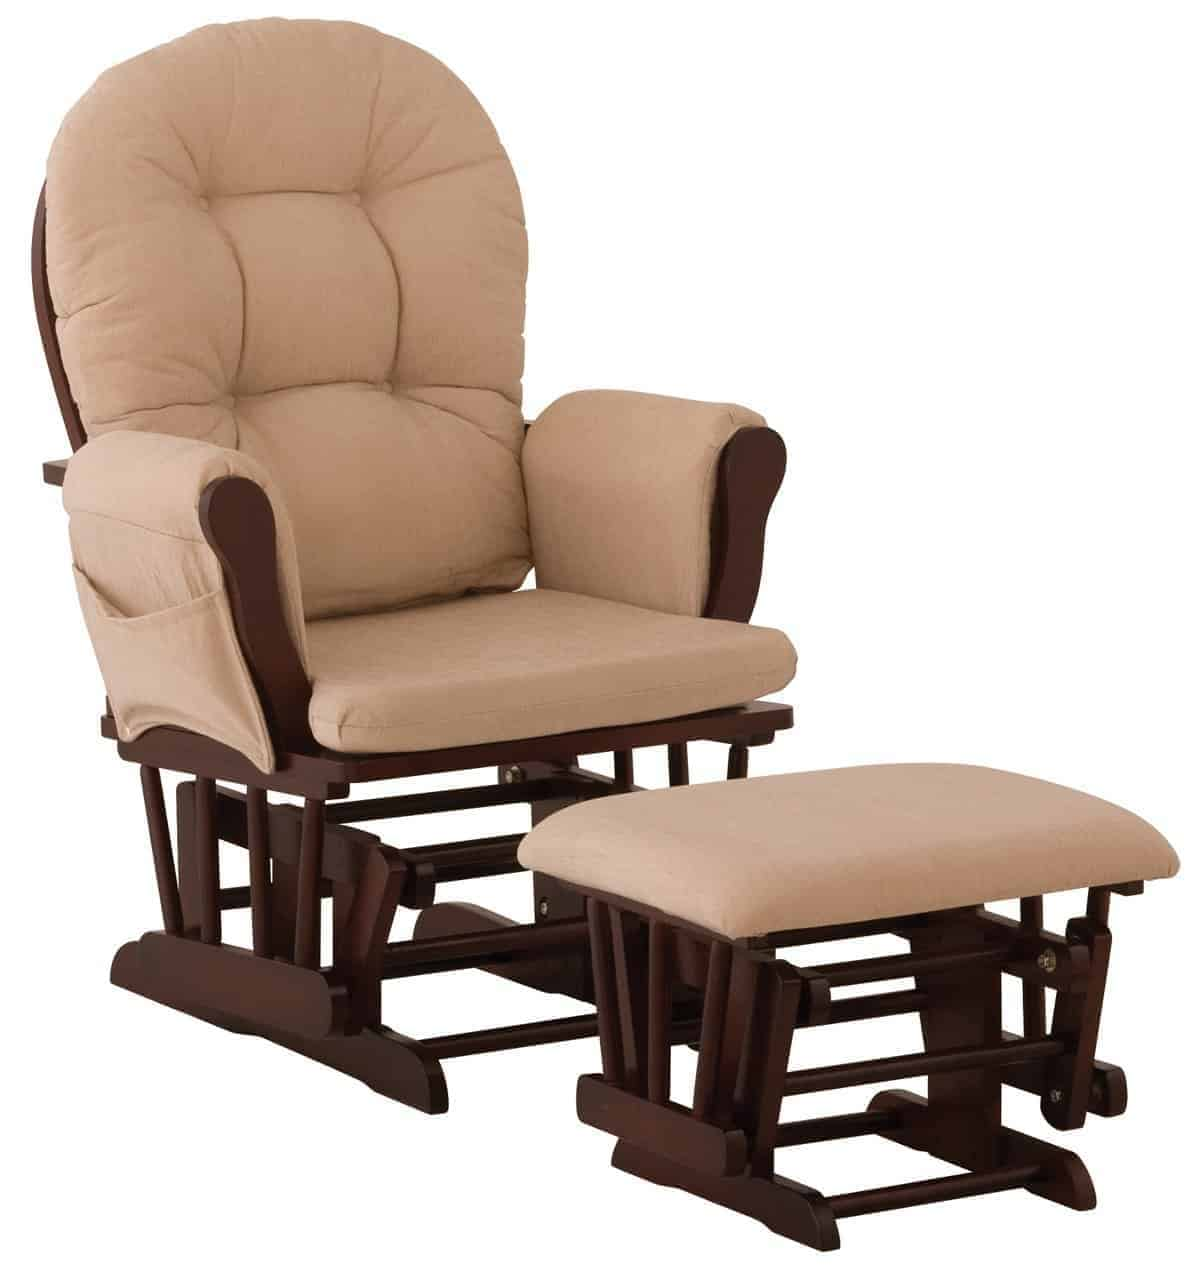 comfy nursing chair cost reupholster best rocking chairs for the nursery